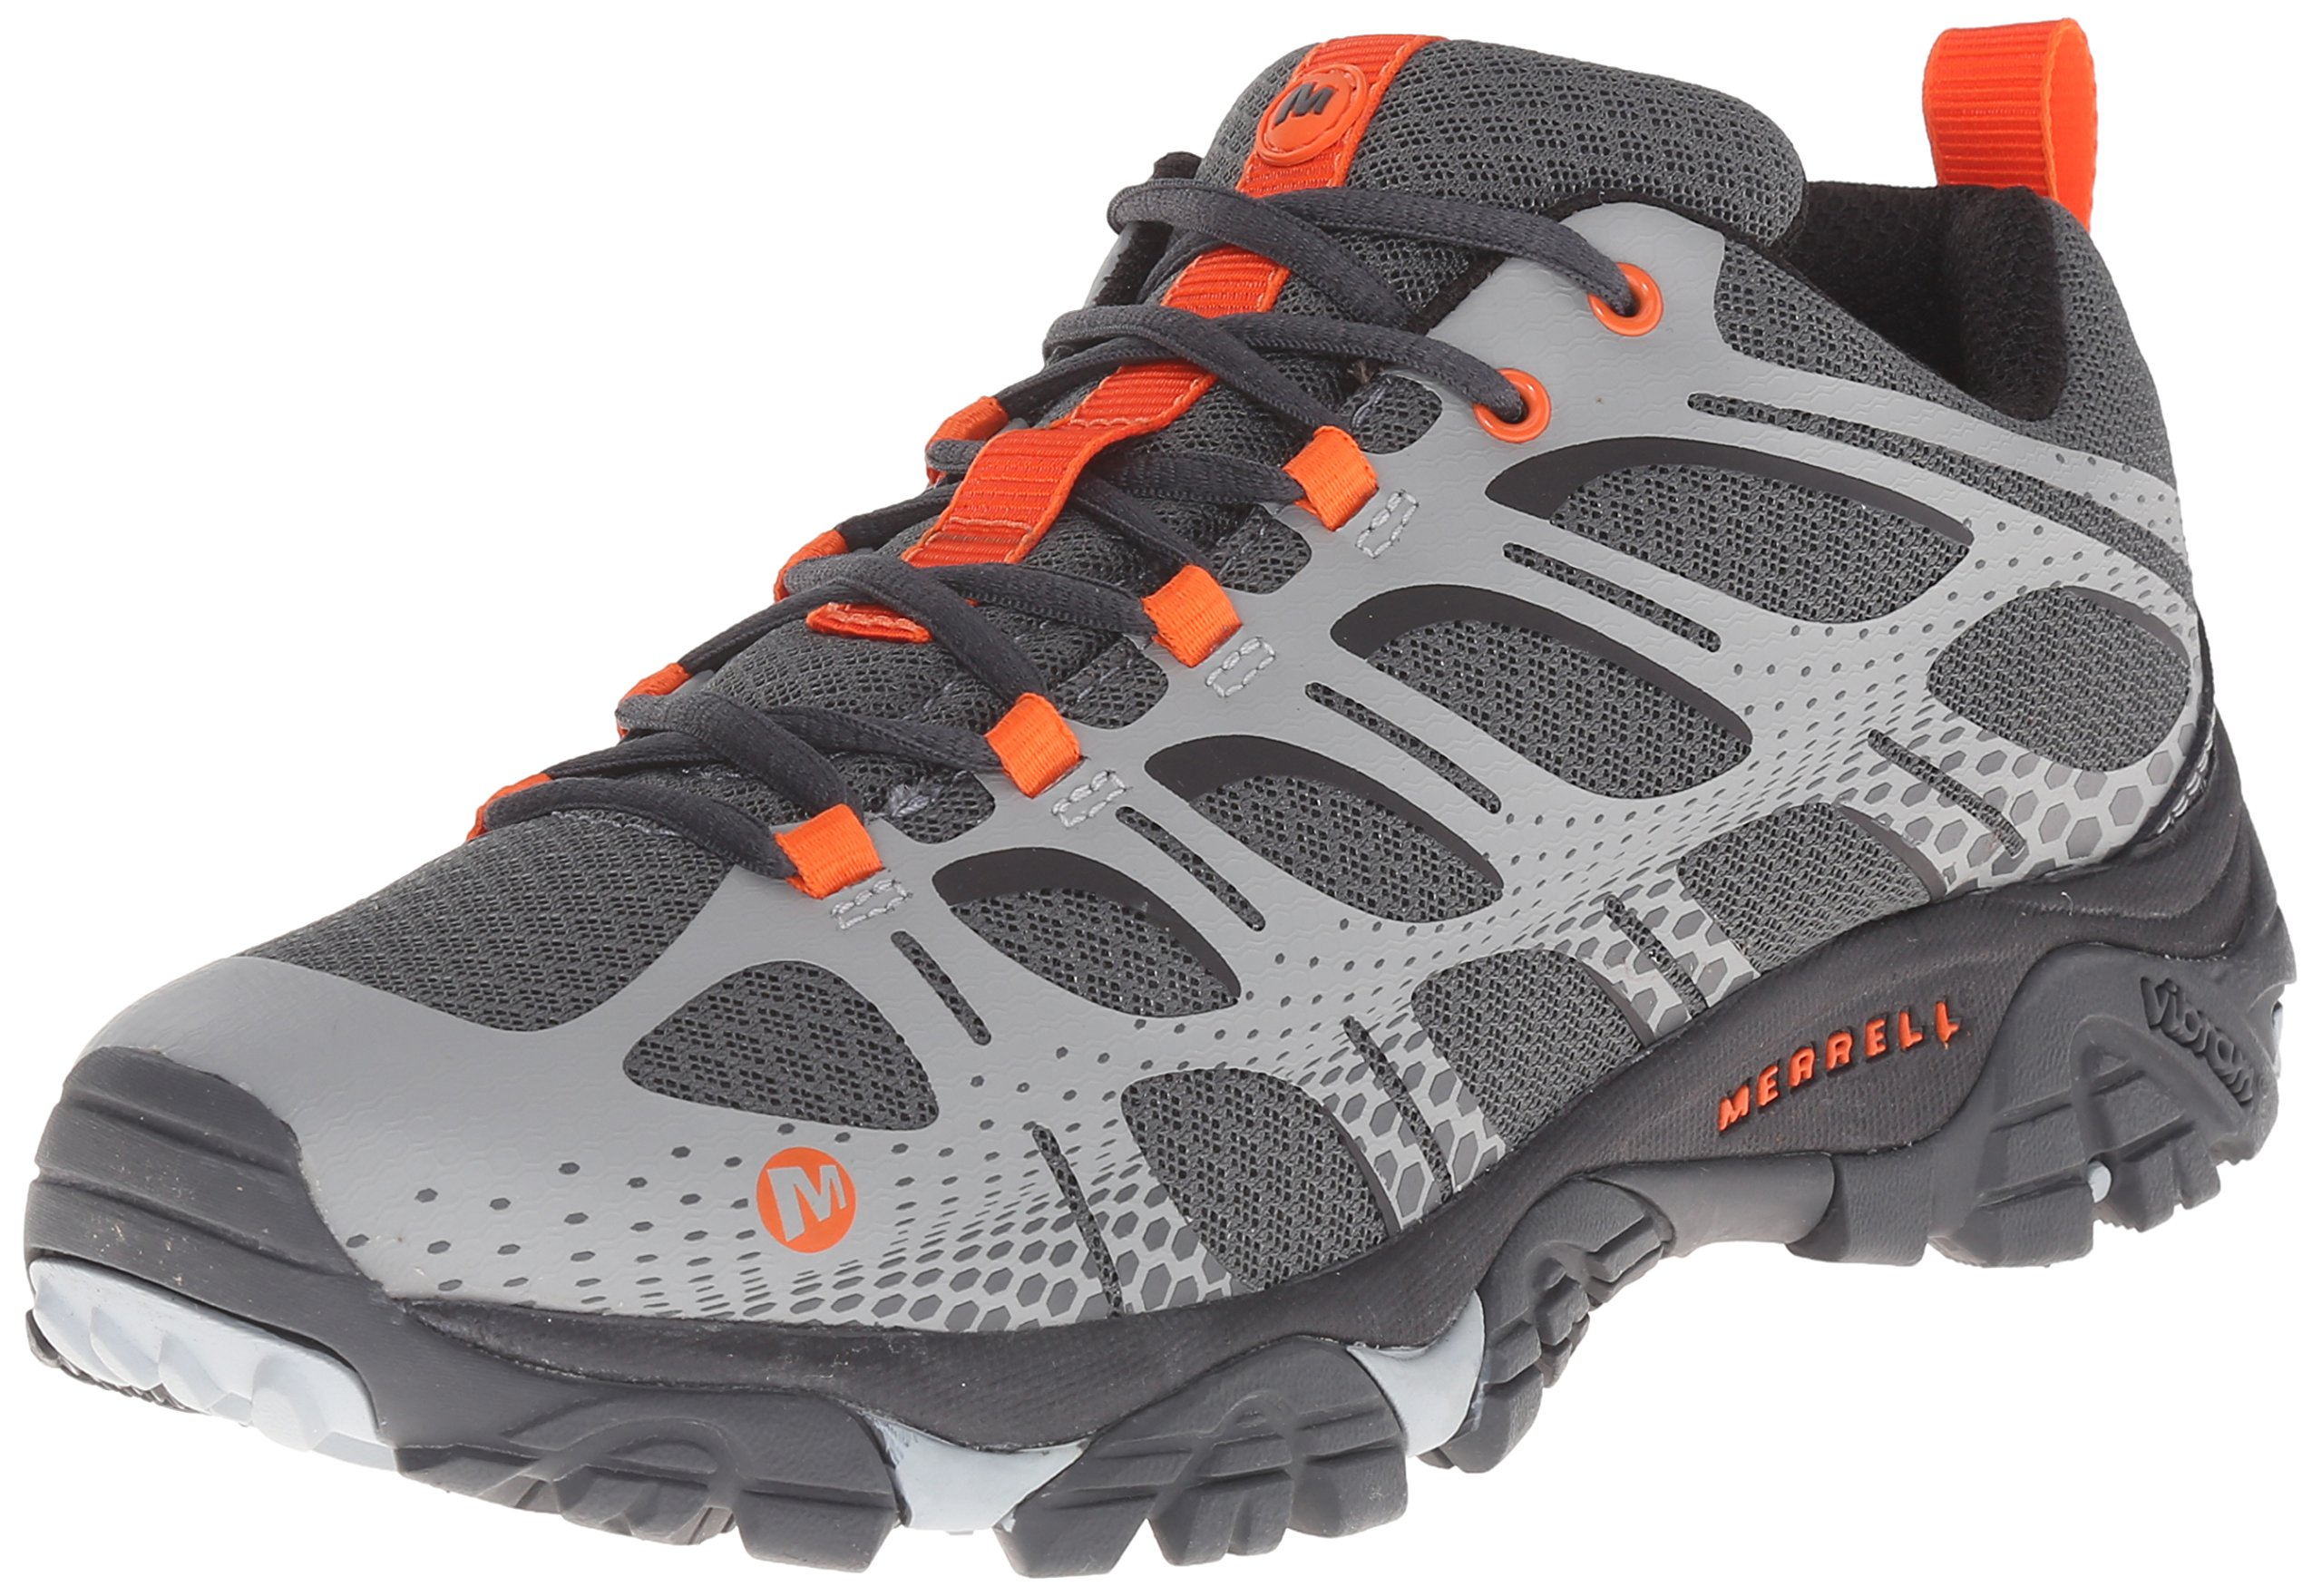 Merrell Men's Moab Edge Shoes, Grey, 9 M US by Merrell